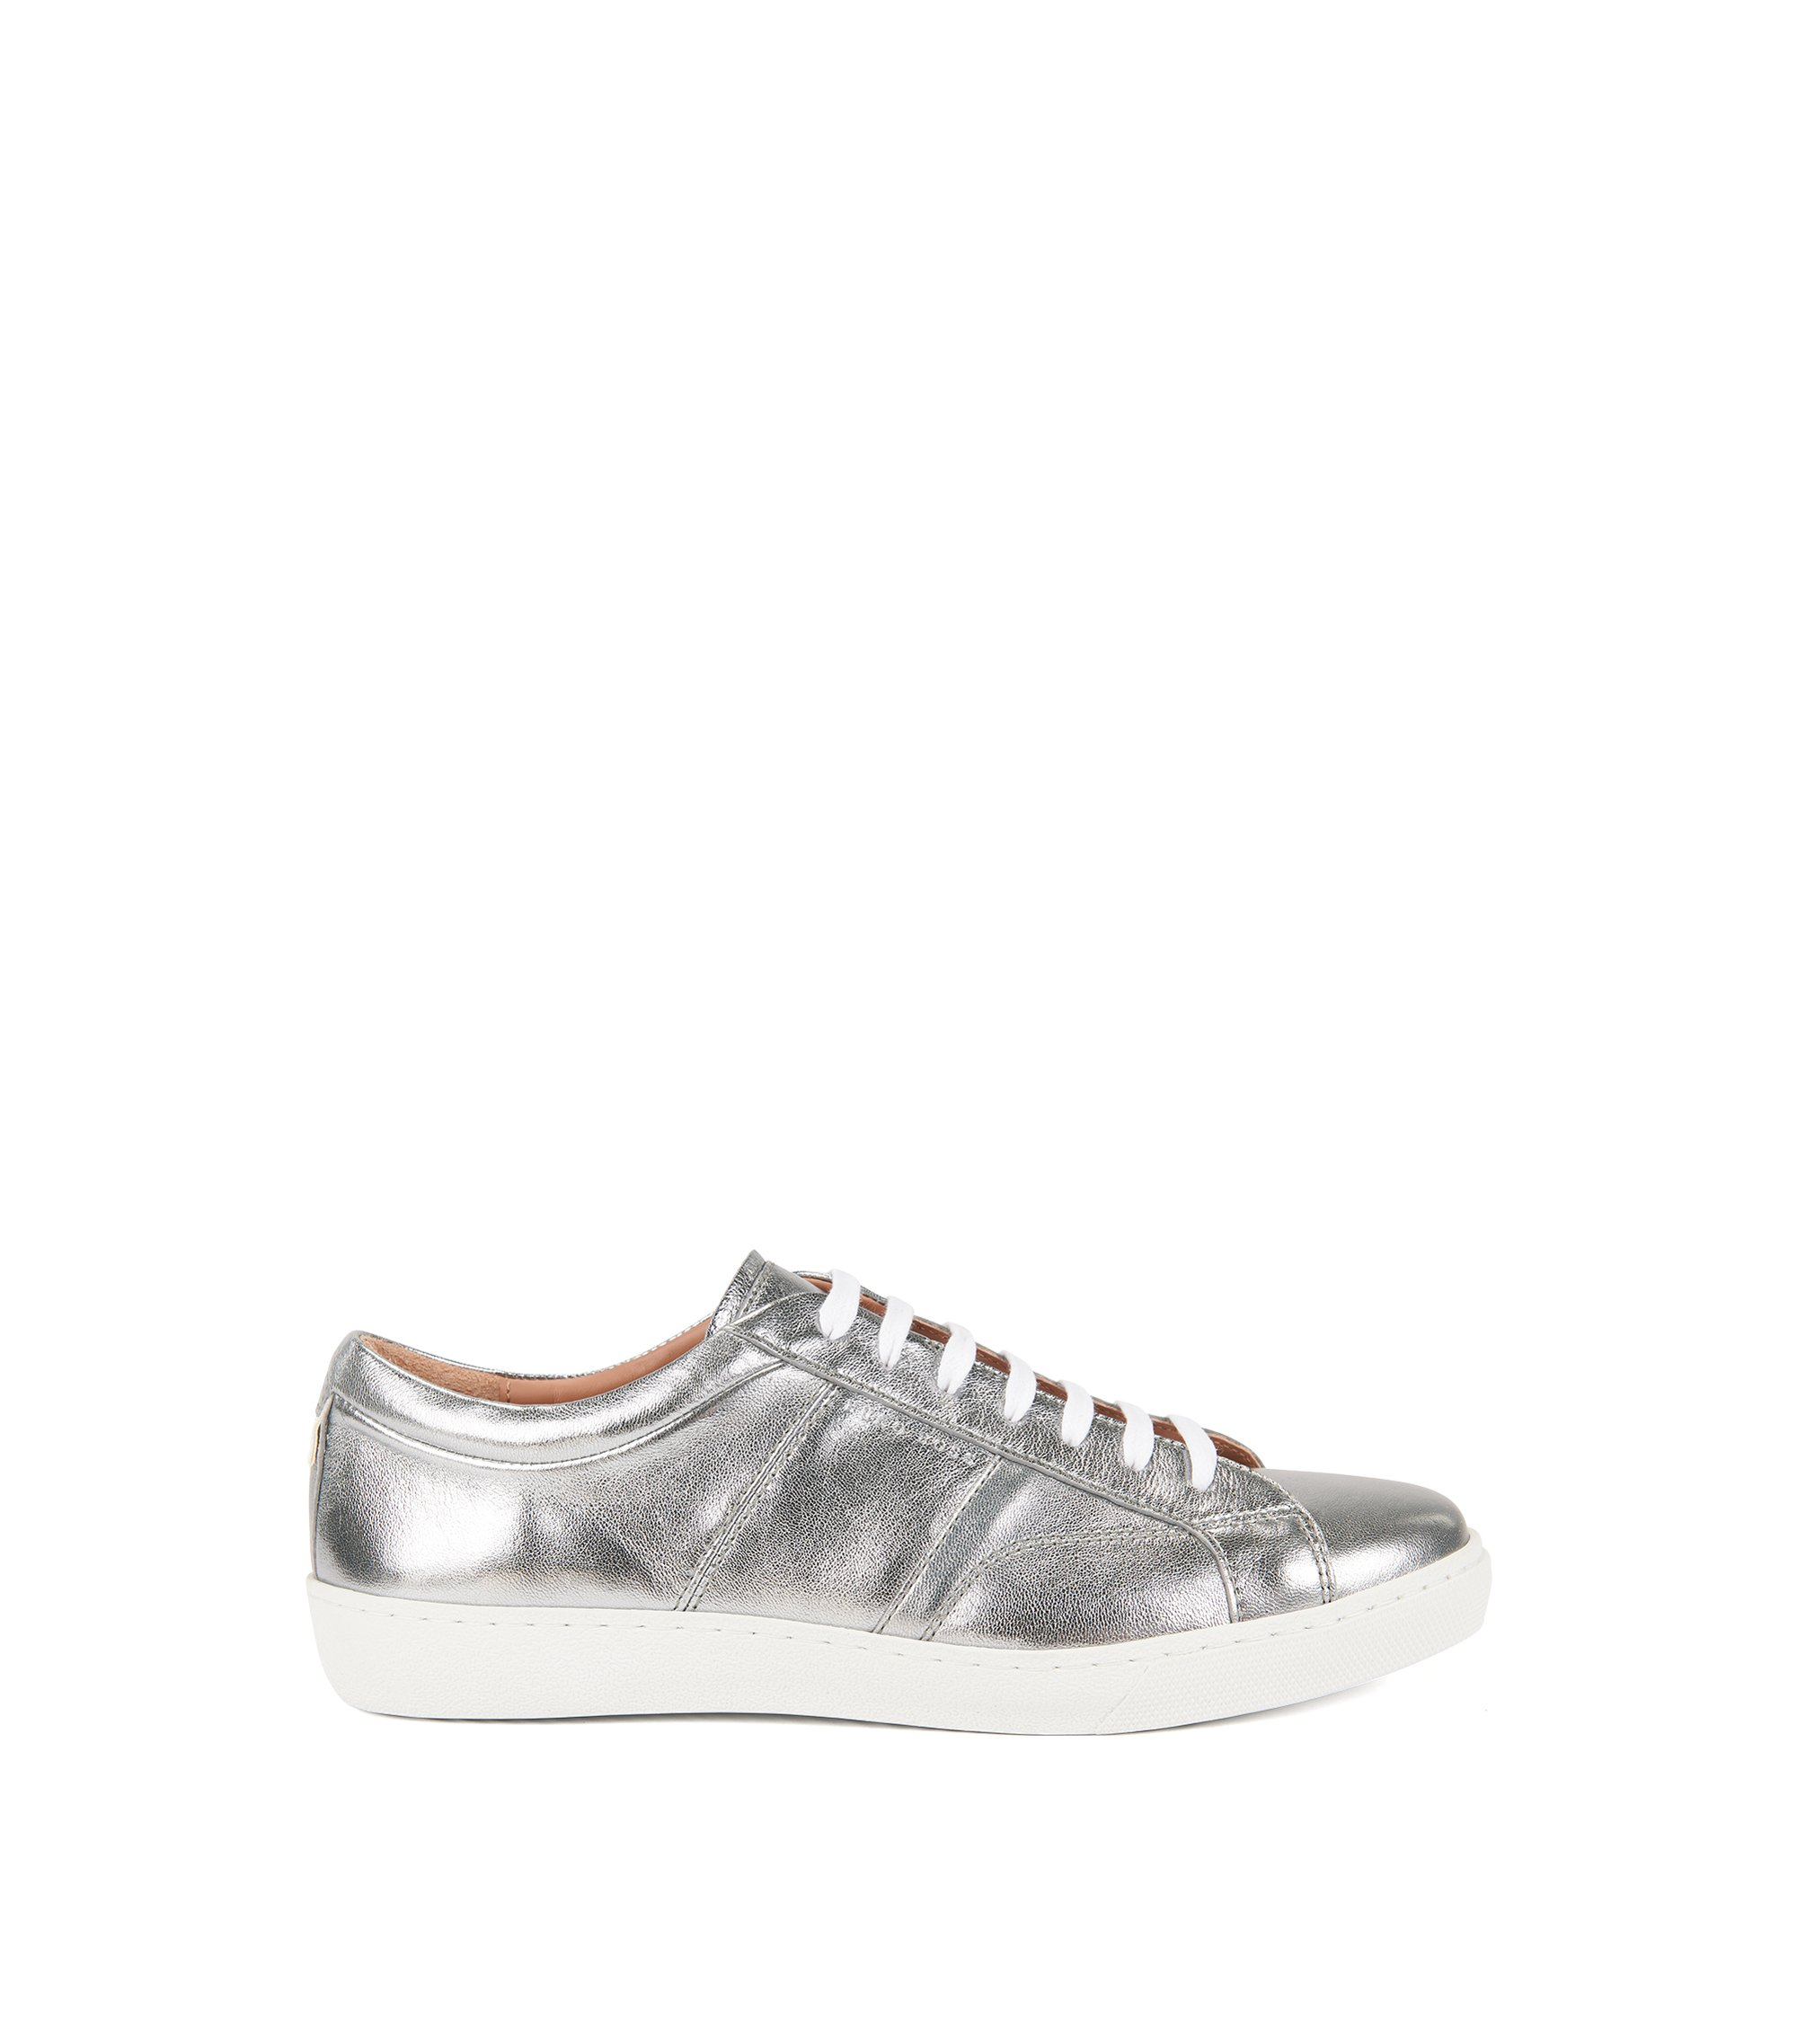 Low-top trainers in laminated leather, Silver